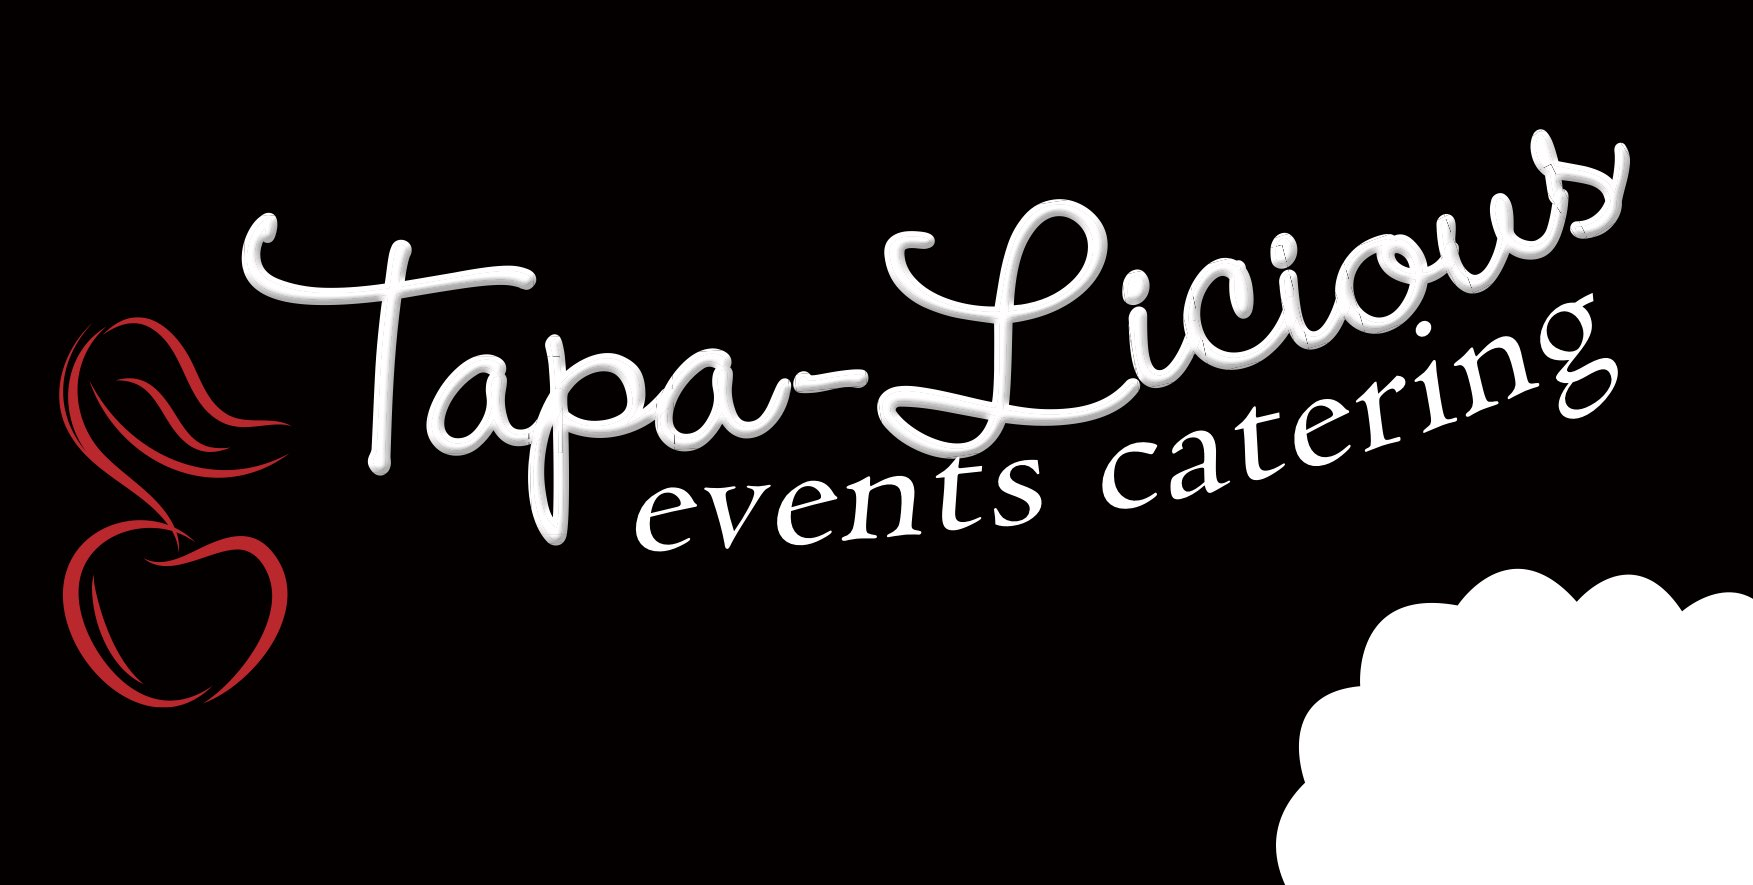 Tanya Punch - Tapa-Licious Events Catering LOGO.jpg